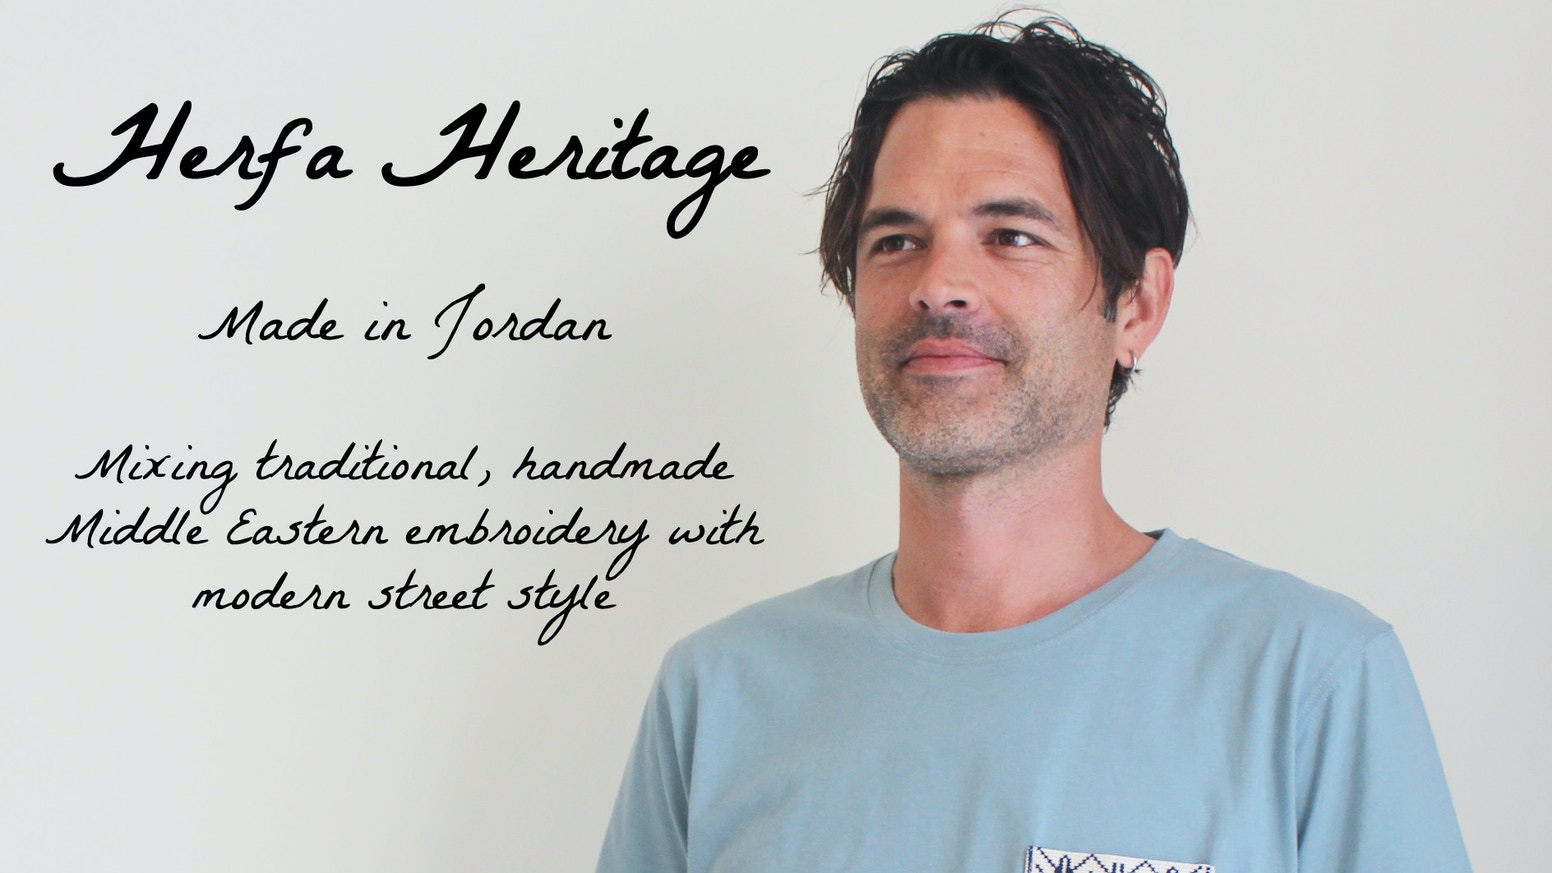 An apparel concept that pairs beautiful, handmade Middle Eastern embroidered pockets with comfy shirts, hoodies & hats #herfaheritage